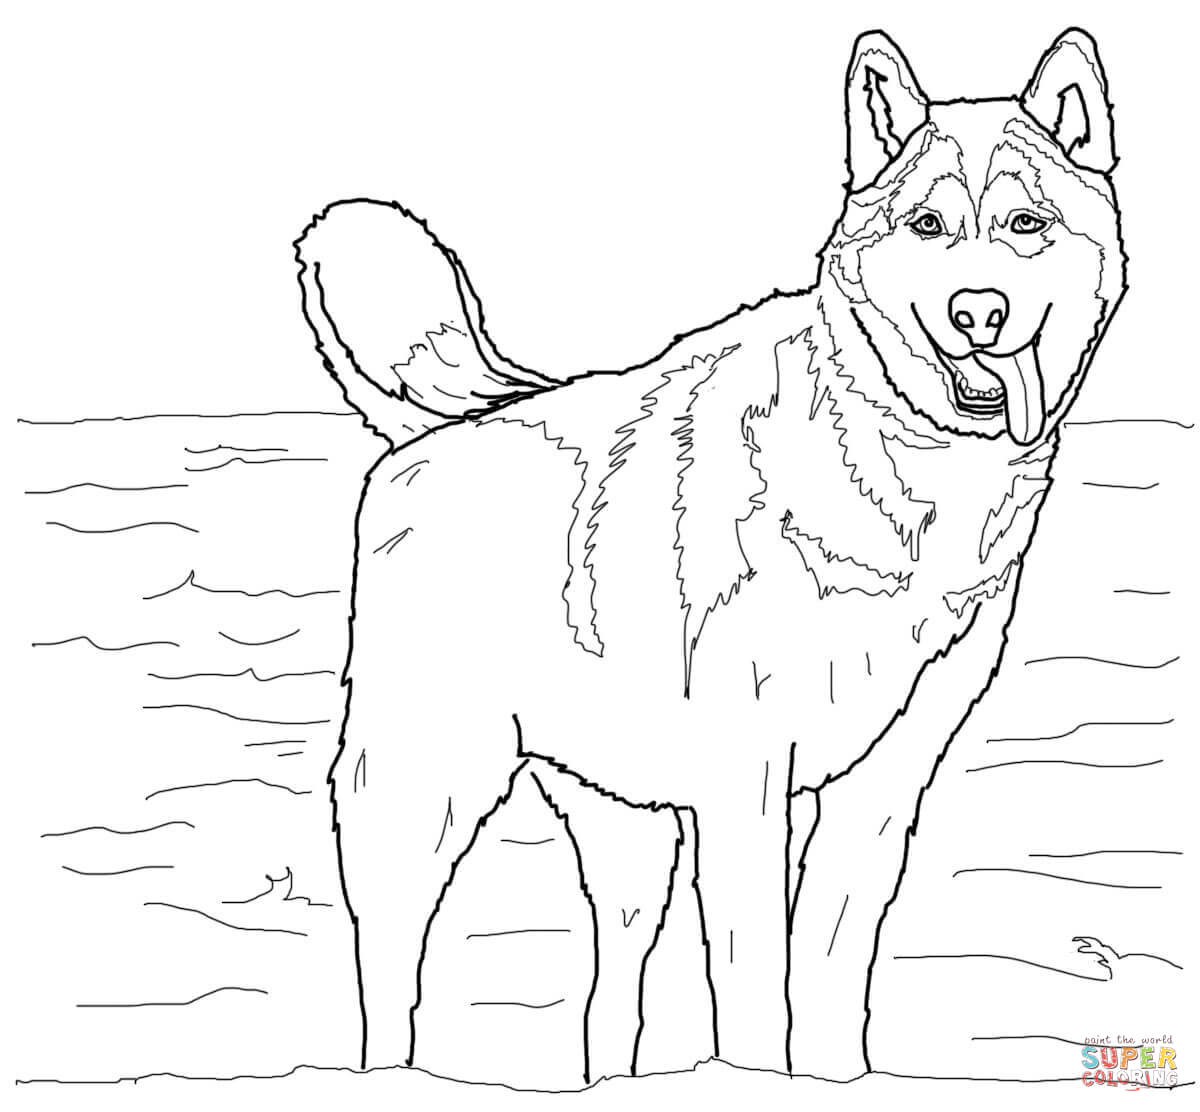 Siberian Husky Coloring Pages - Coloring Home